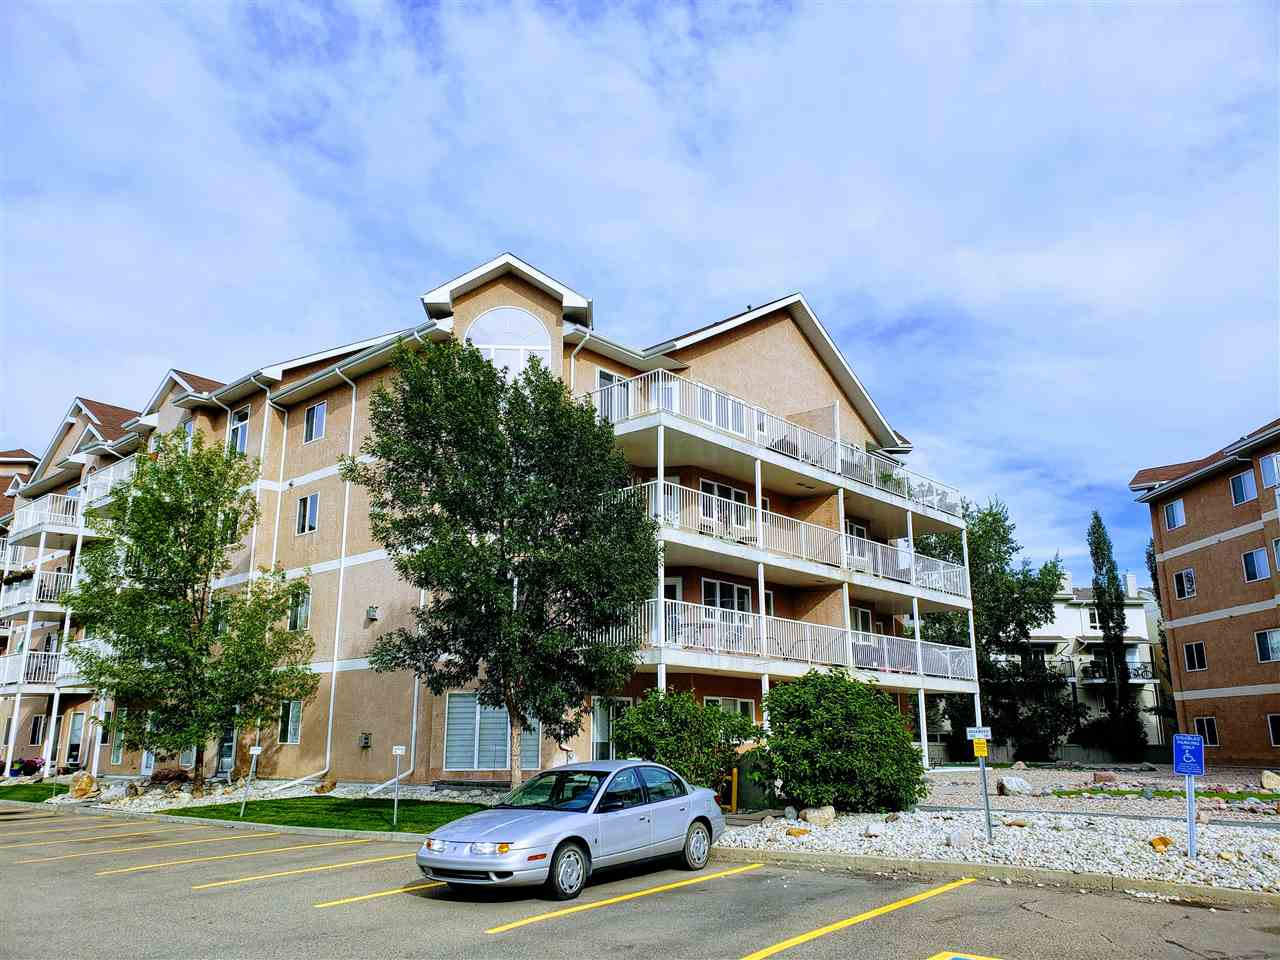 MLS® listing #E4170642 for sale located at 104 4312 139 Avenue NW